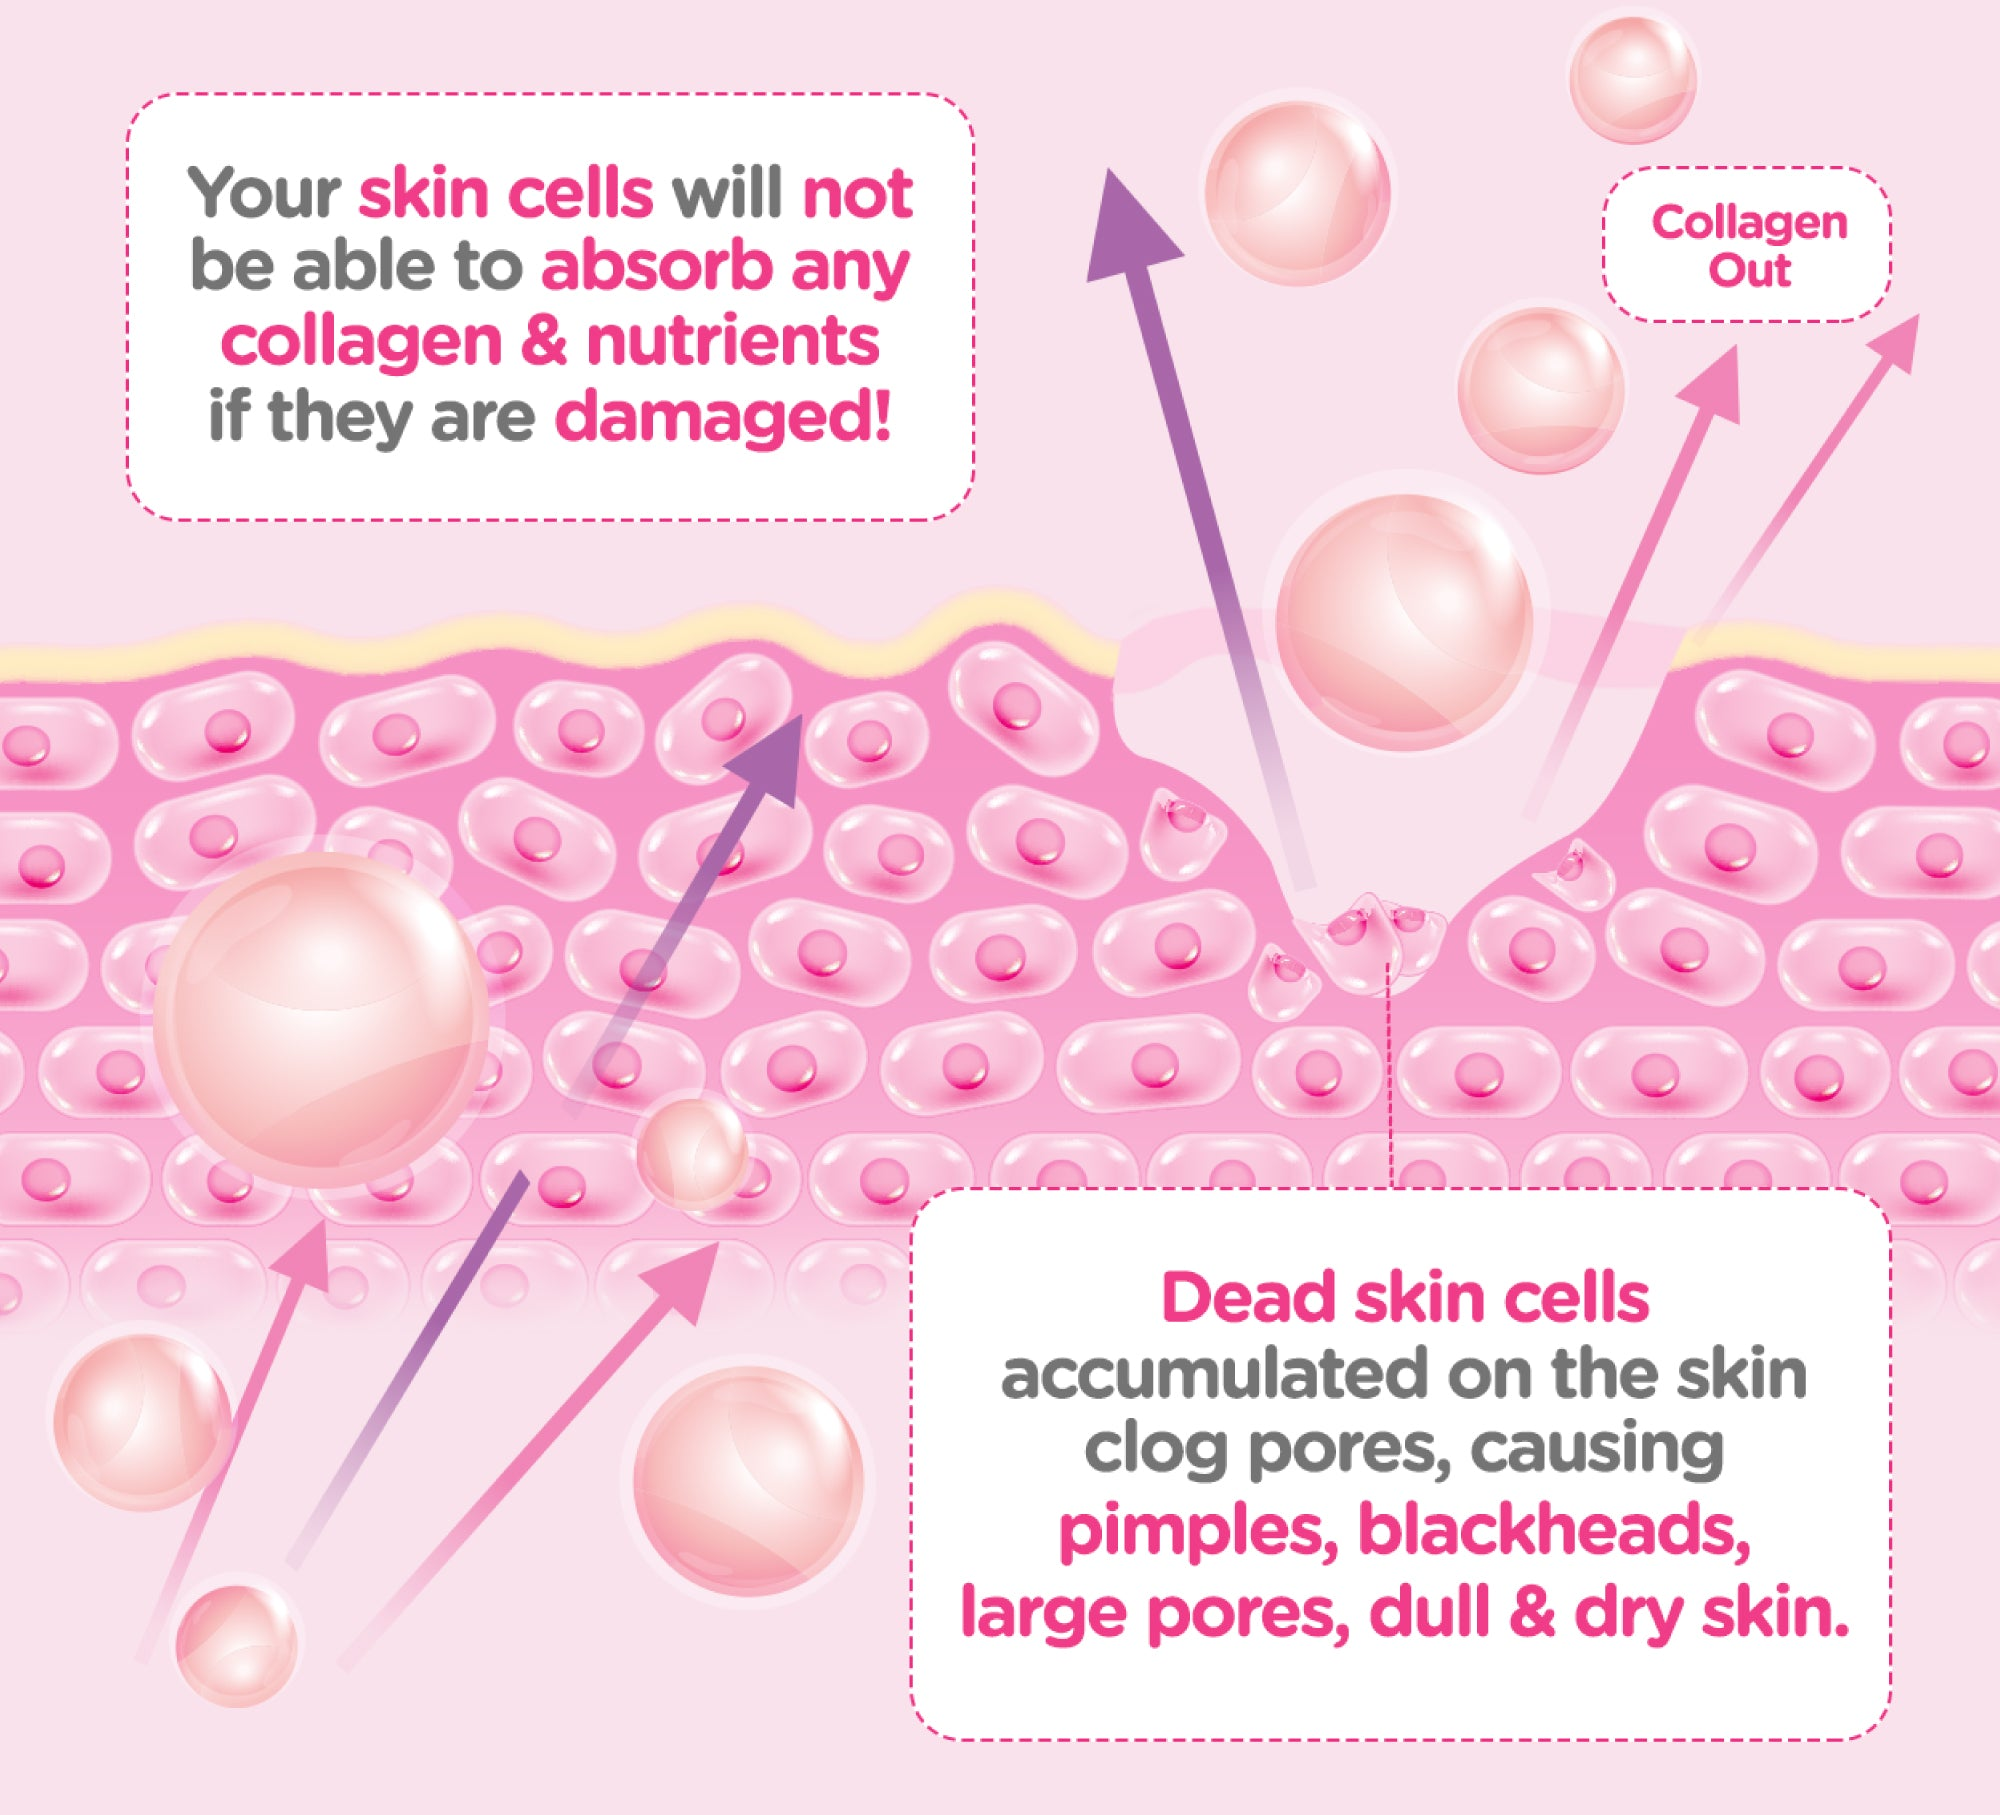 Damaged skin is unable to absorb any collagen & nutrients.  Damaged skin gradually becomes dead skin cells accumulated on the skin. They will clog pores, causing pimples, blackheads, large pores, dull & dry skin.